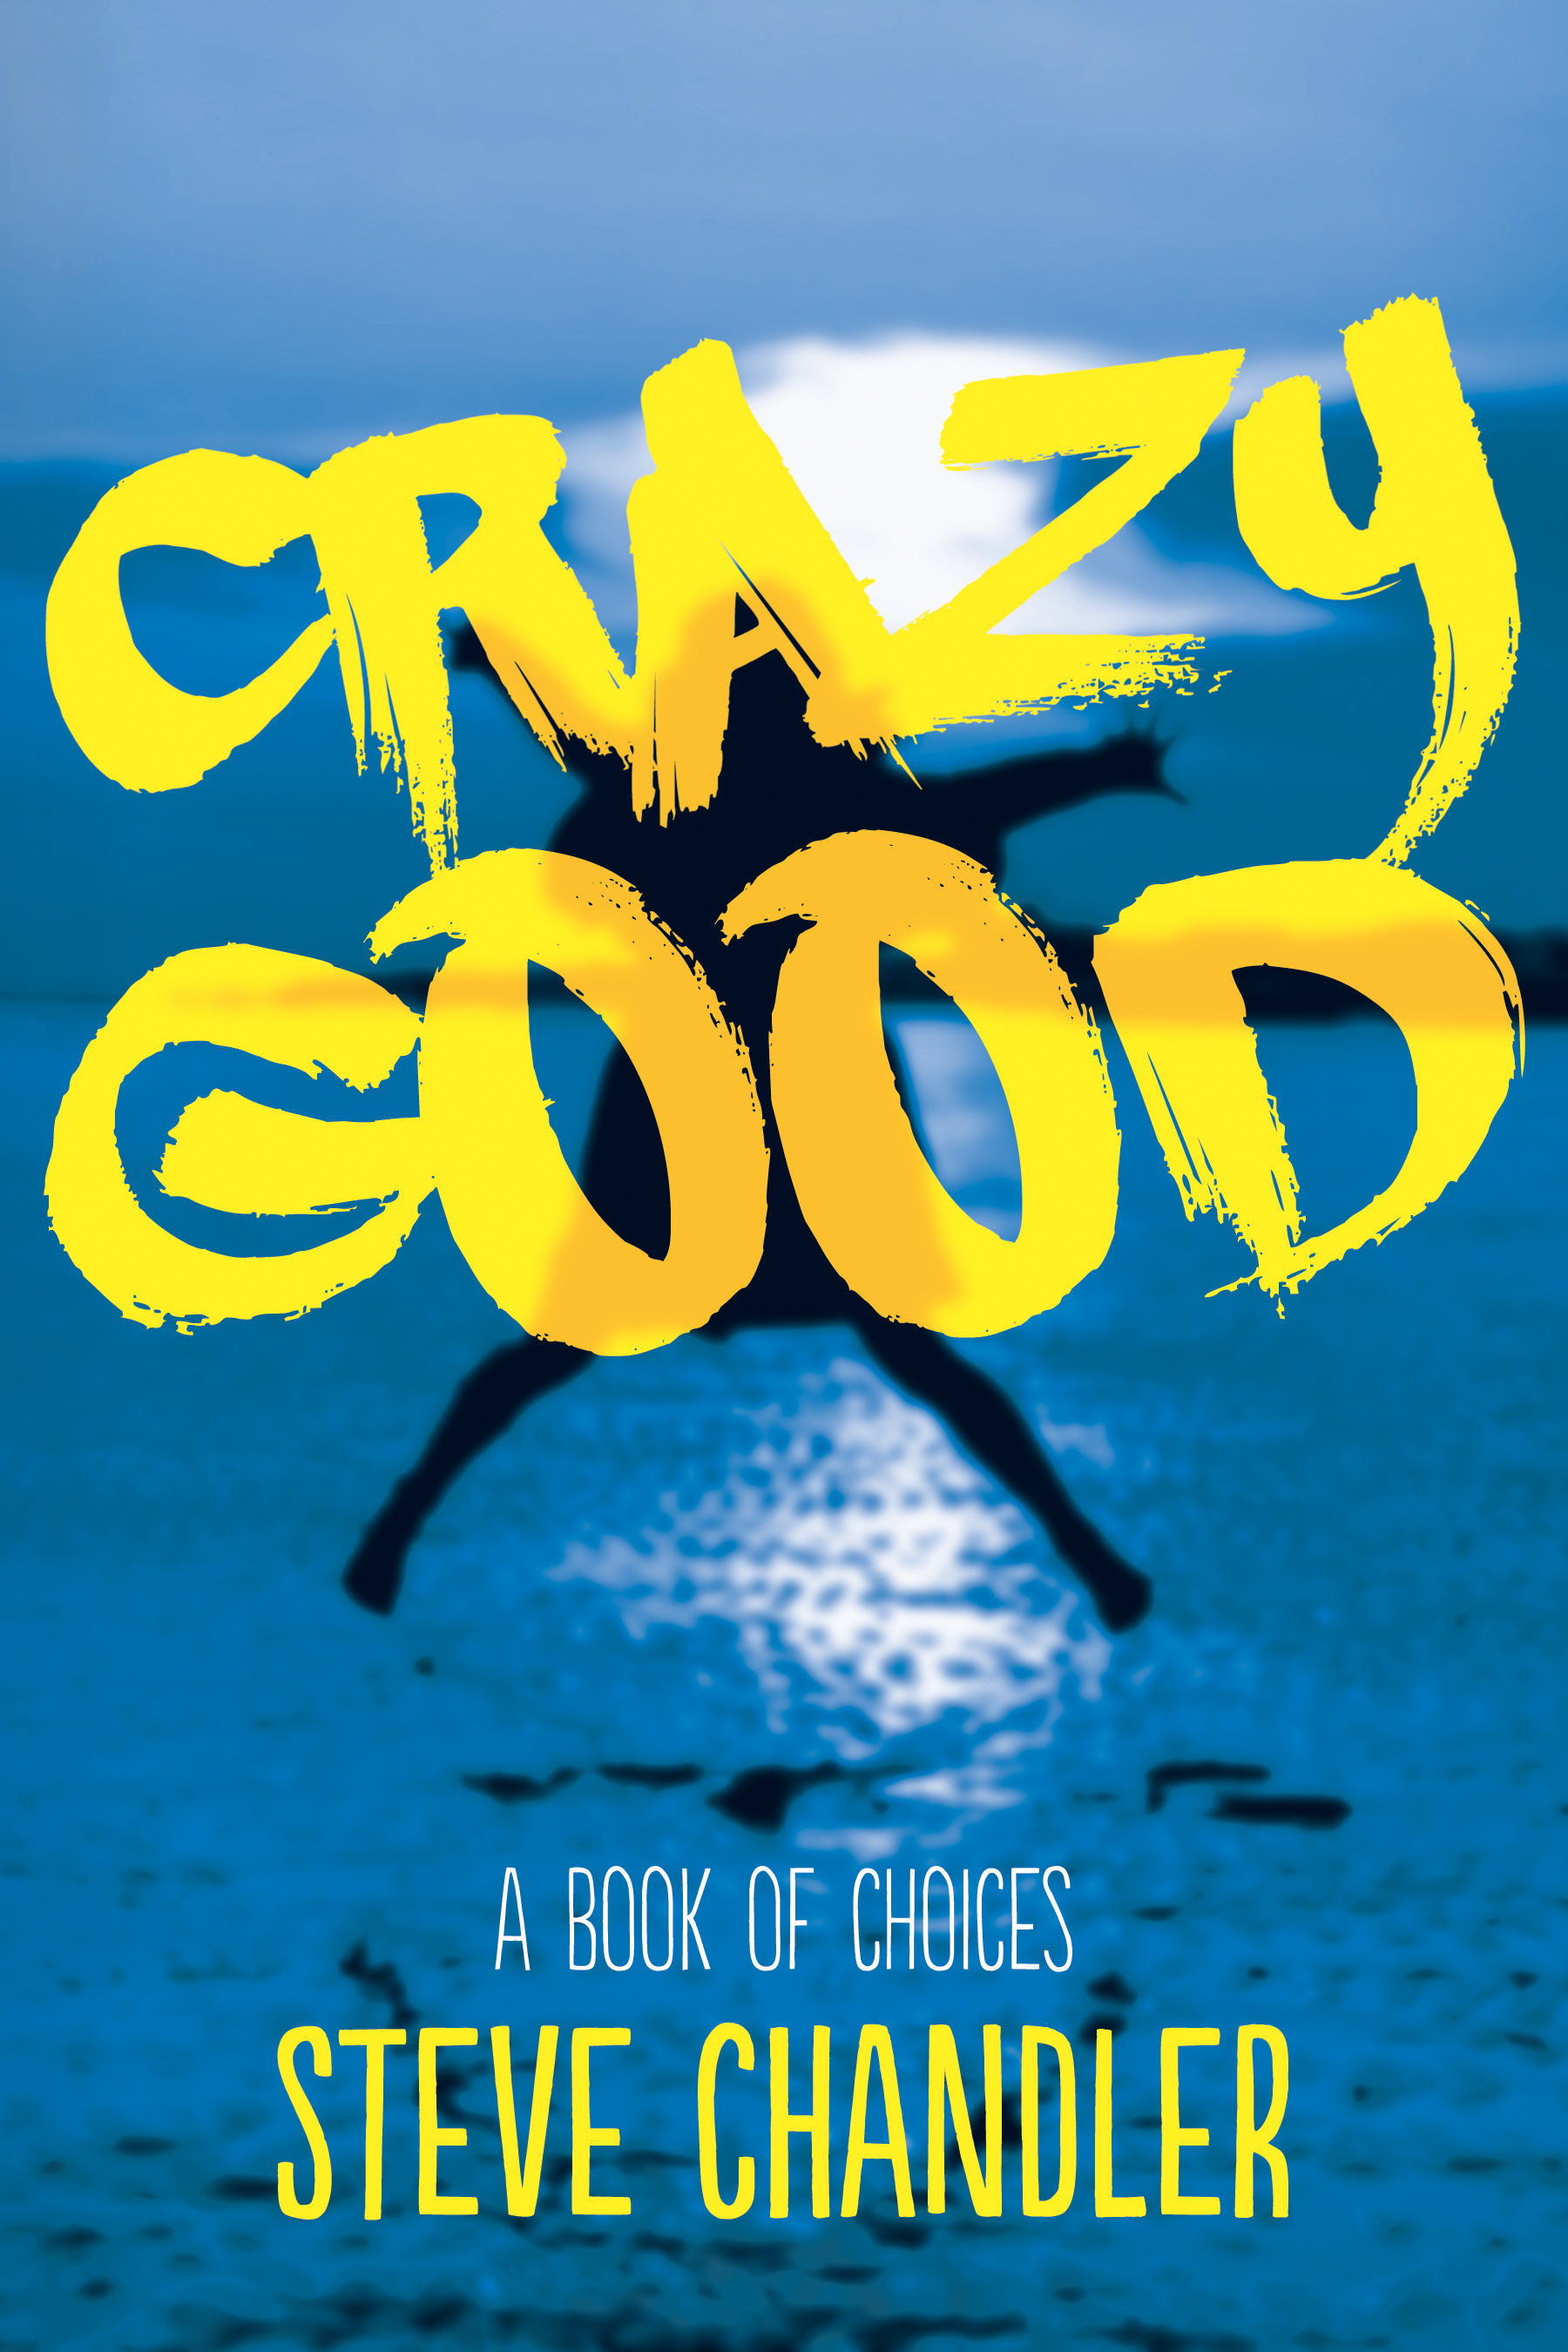 Crazy Good:A Book of Choices - By Steve Chandler